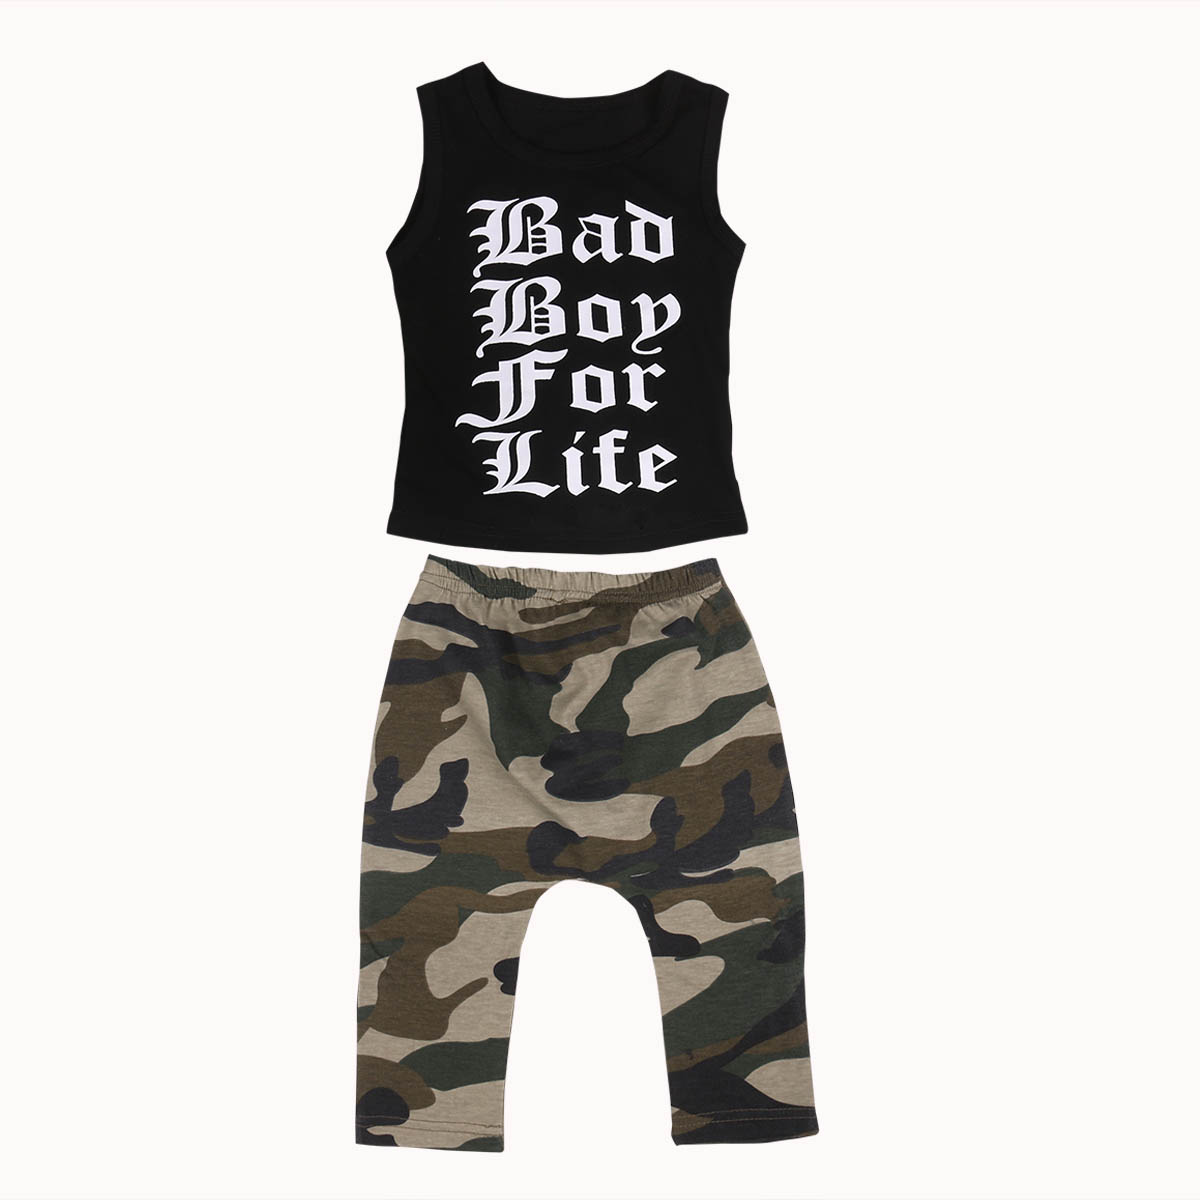 2017 Summer Kids Boy Clothing Set Sleeveless Letter Print Vest T-shirt Tops+Camouflage Pant 2PCS Children Clothes 0-4Y 2017 cute kids girl clothing set off shoulder lace white t shirt tops denim pant jeans 2pcs children clothes 2 7y